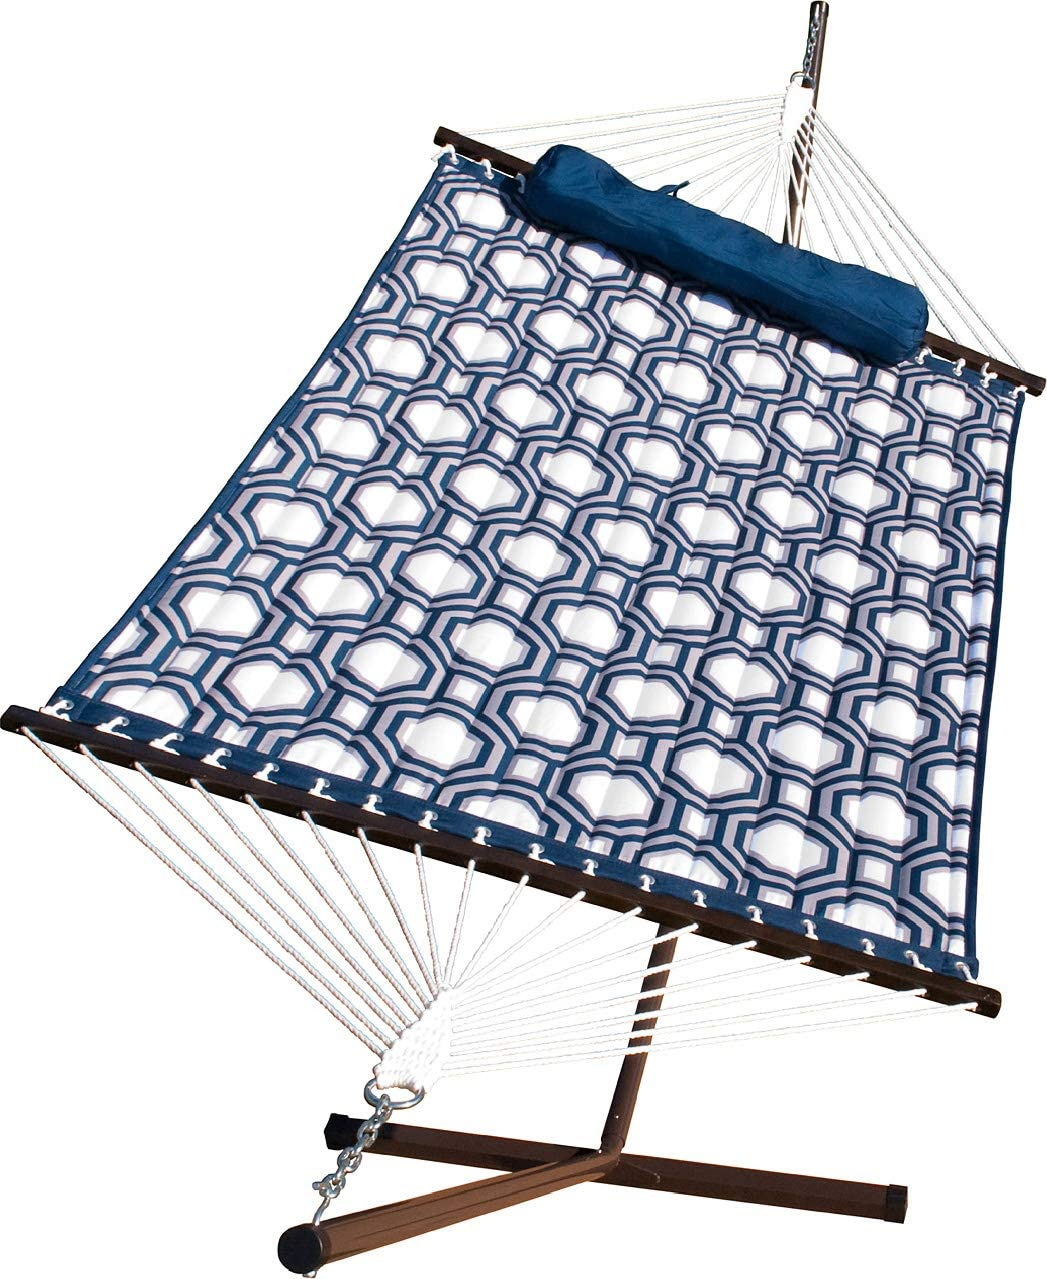 Algoma Quilted Hammock and Stand Combination, 275 lbs. Cap 11 L, Blue